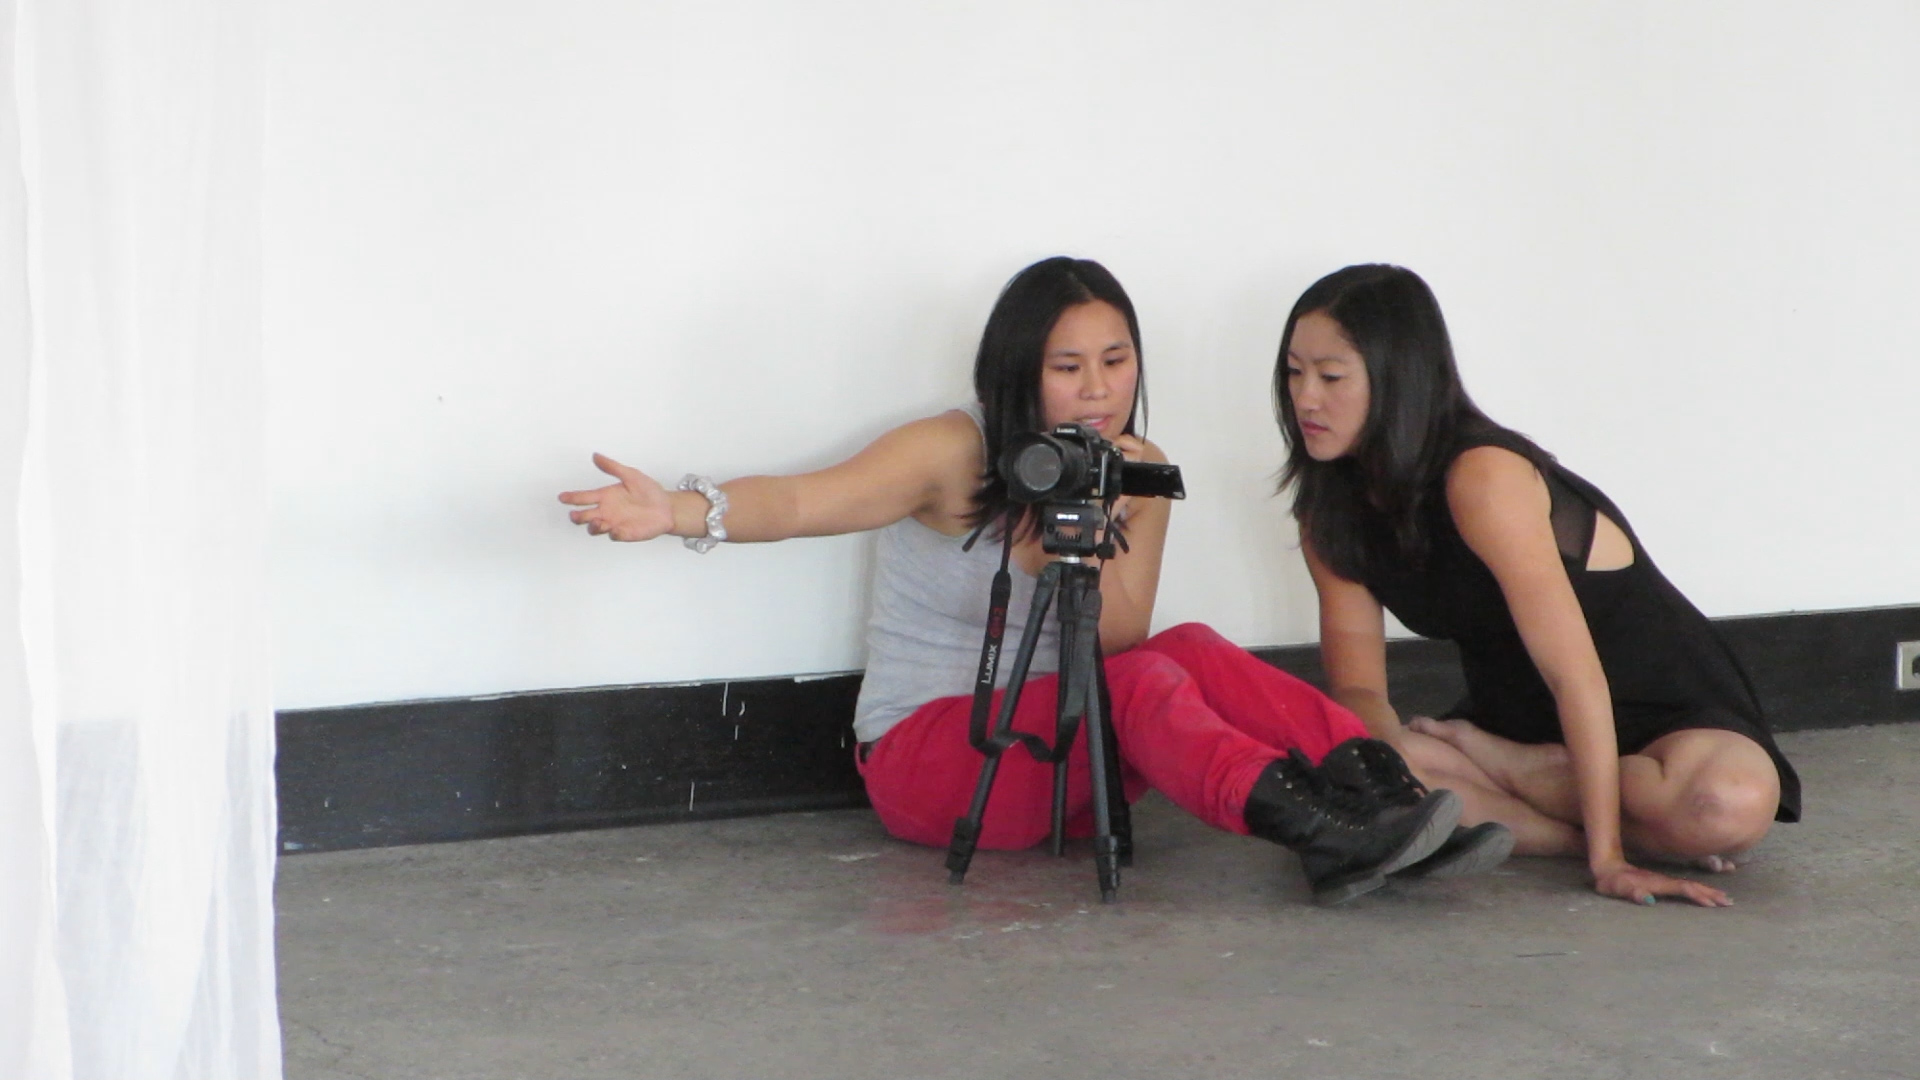 Lee Milby and Jessica Chen